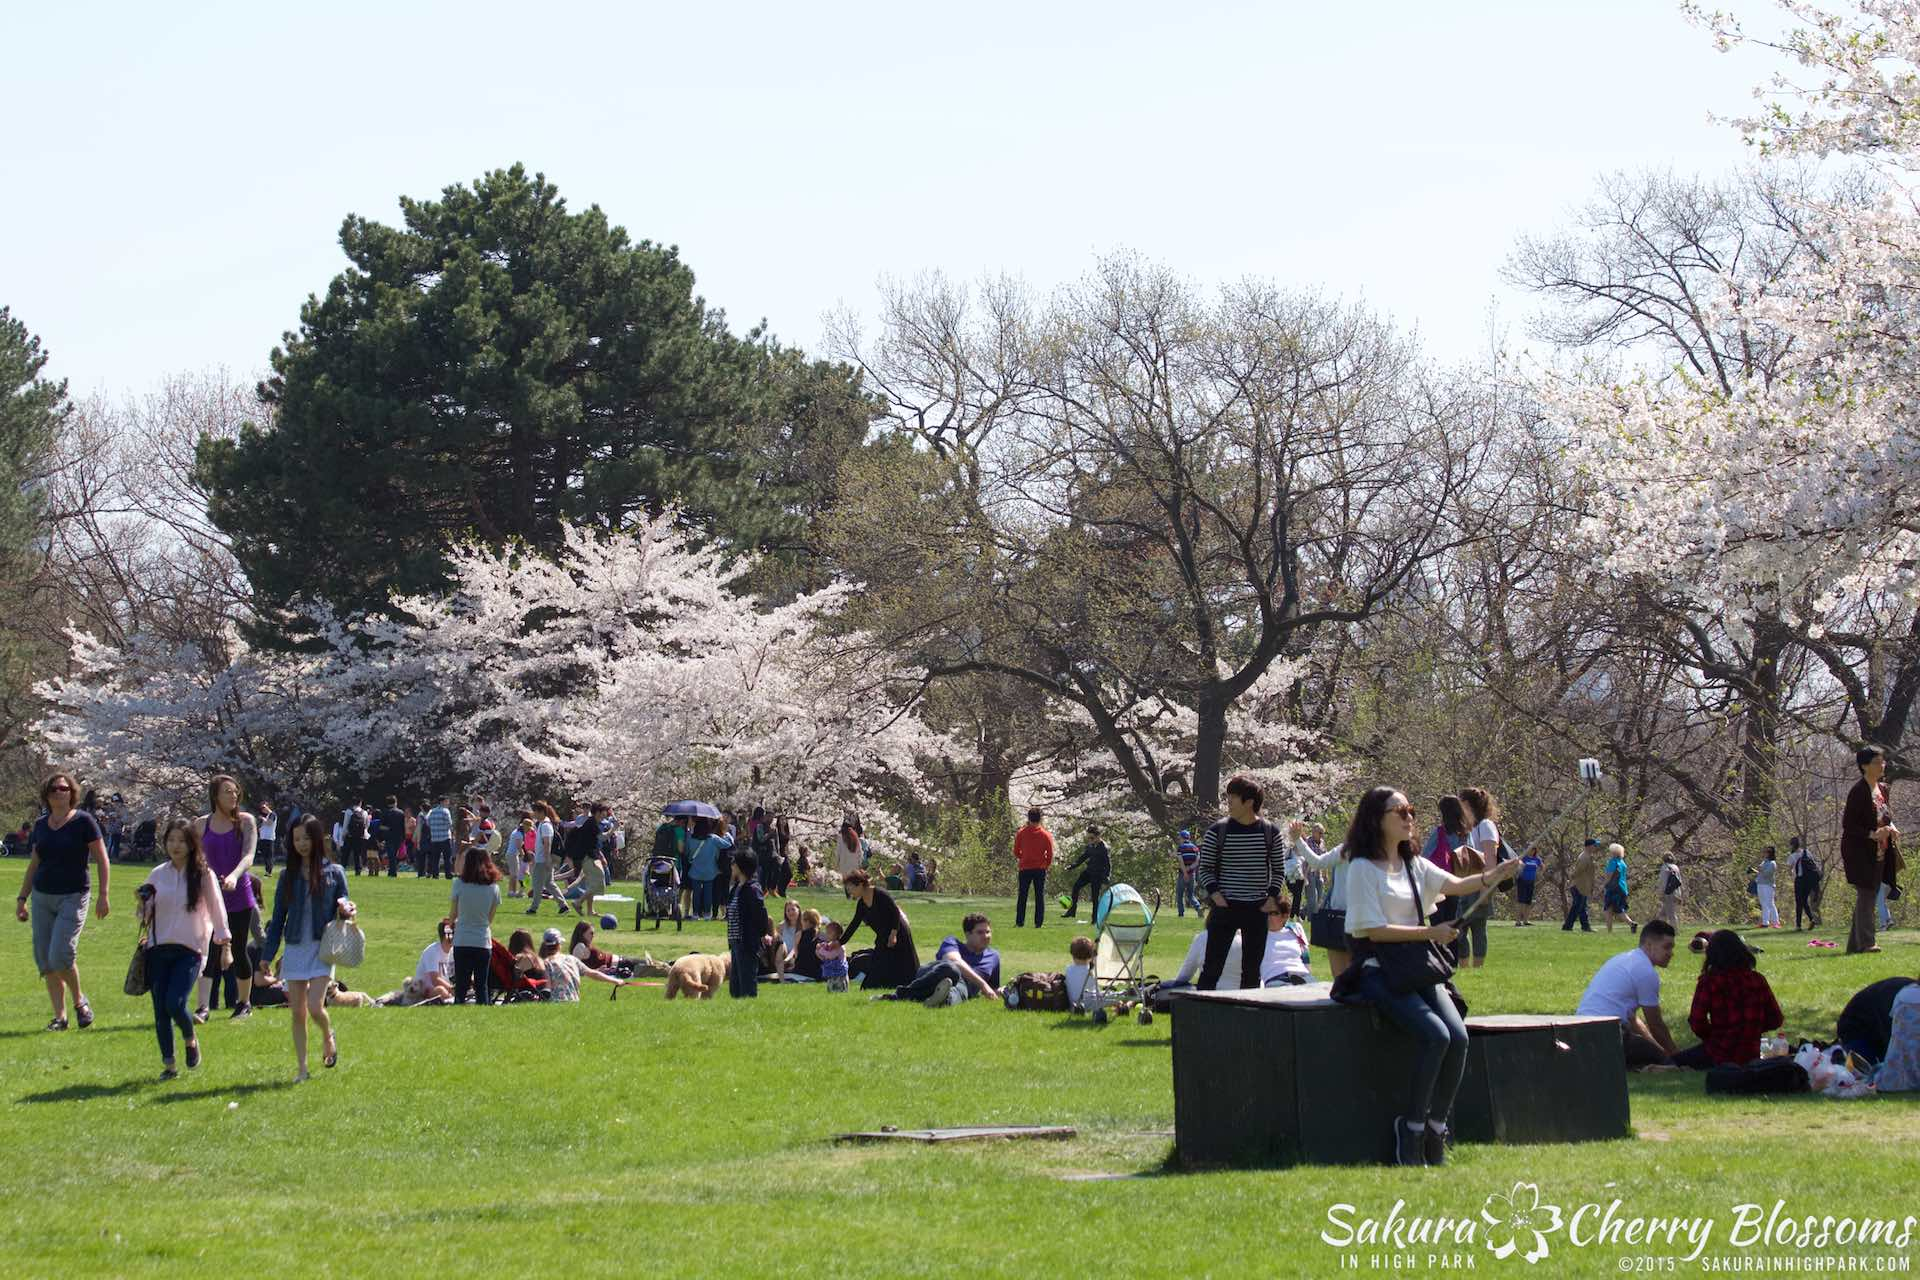 SakurainHighPark-May715-2339.jpg